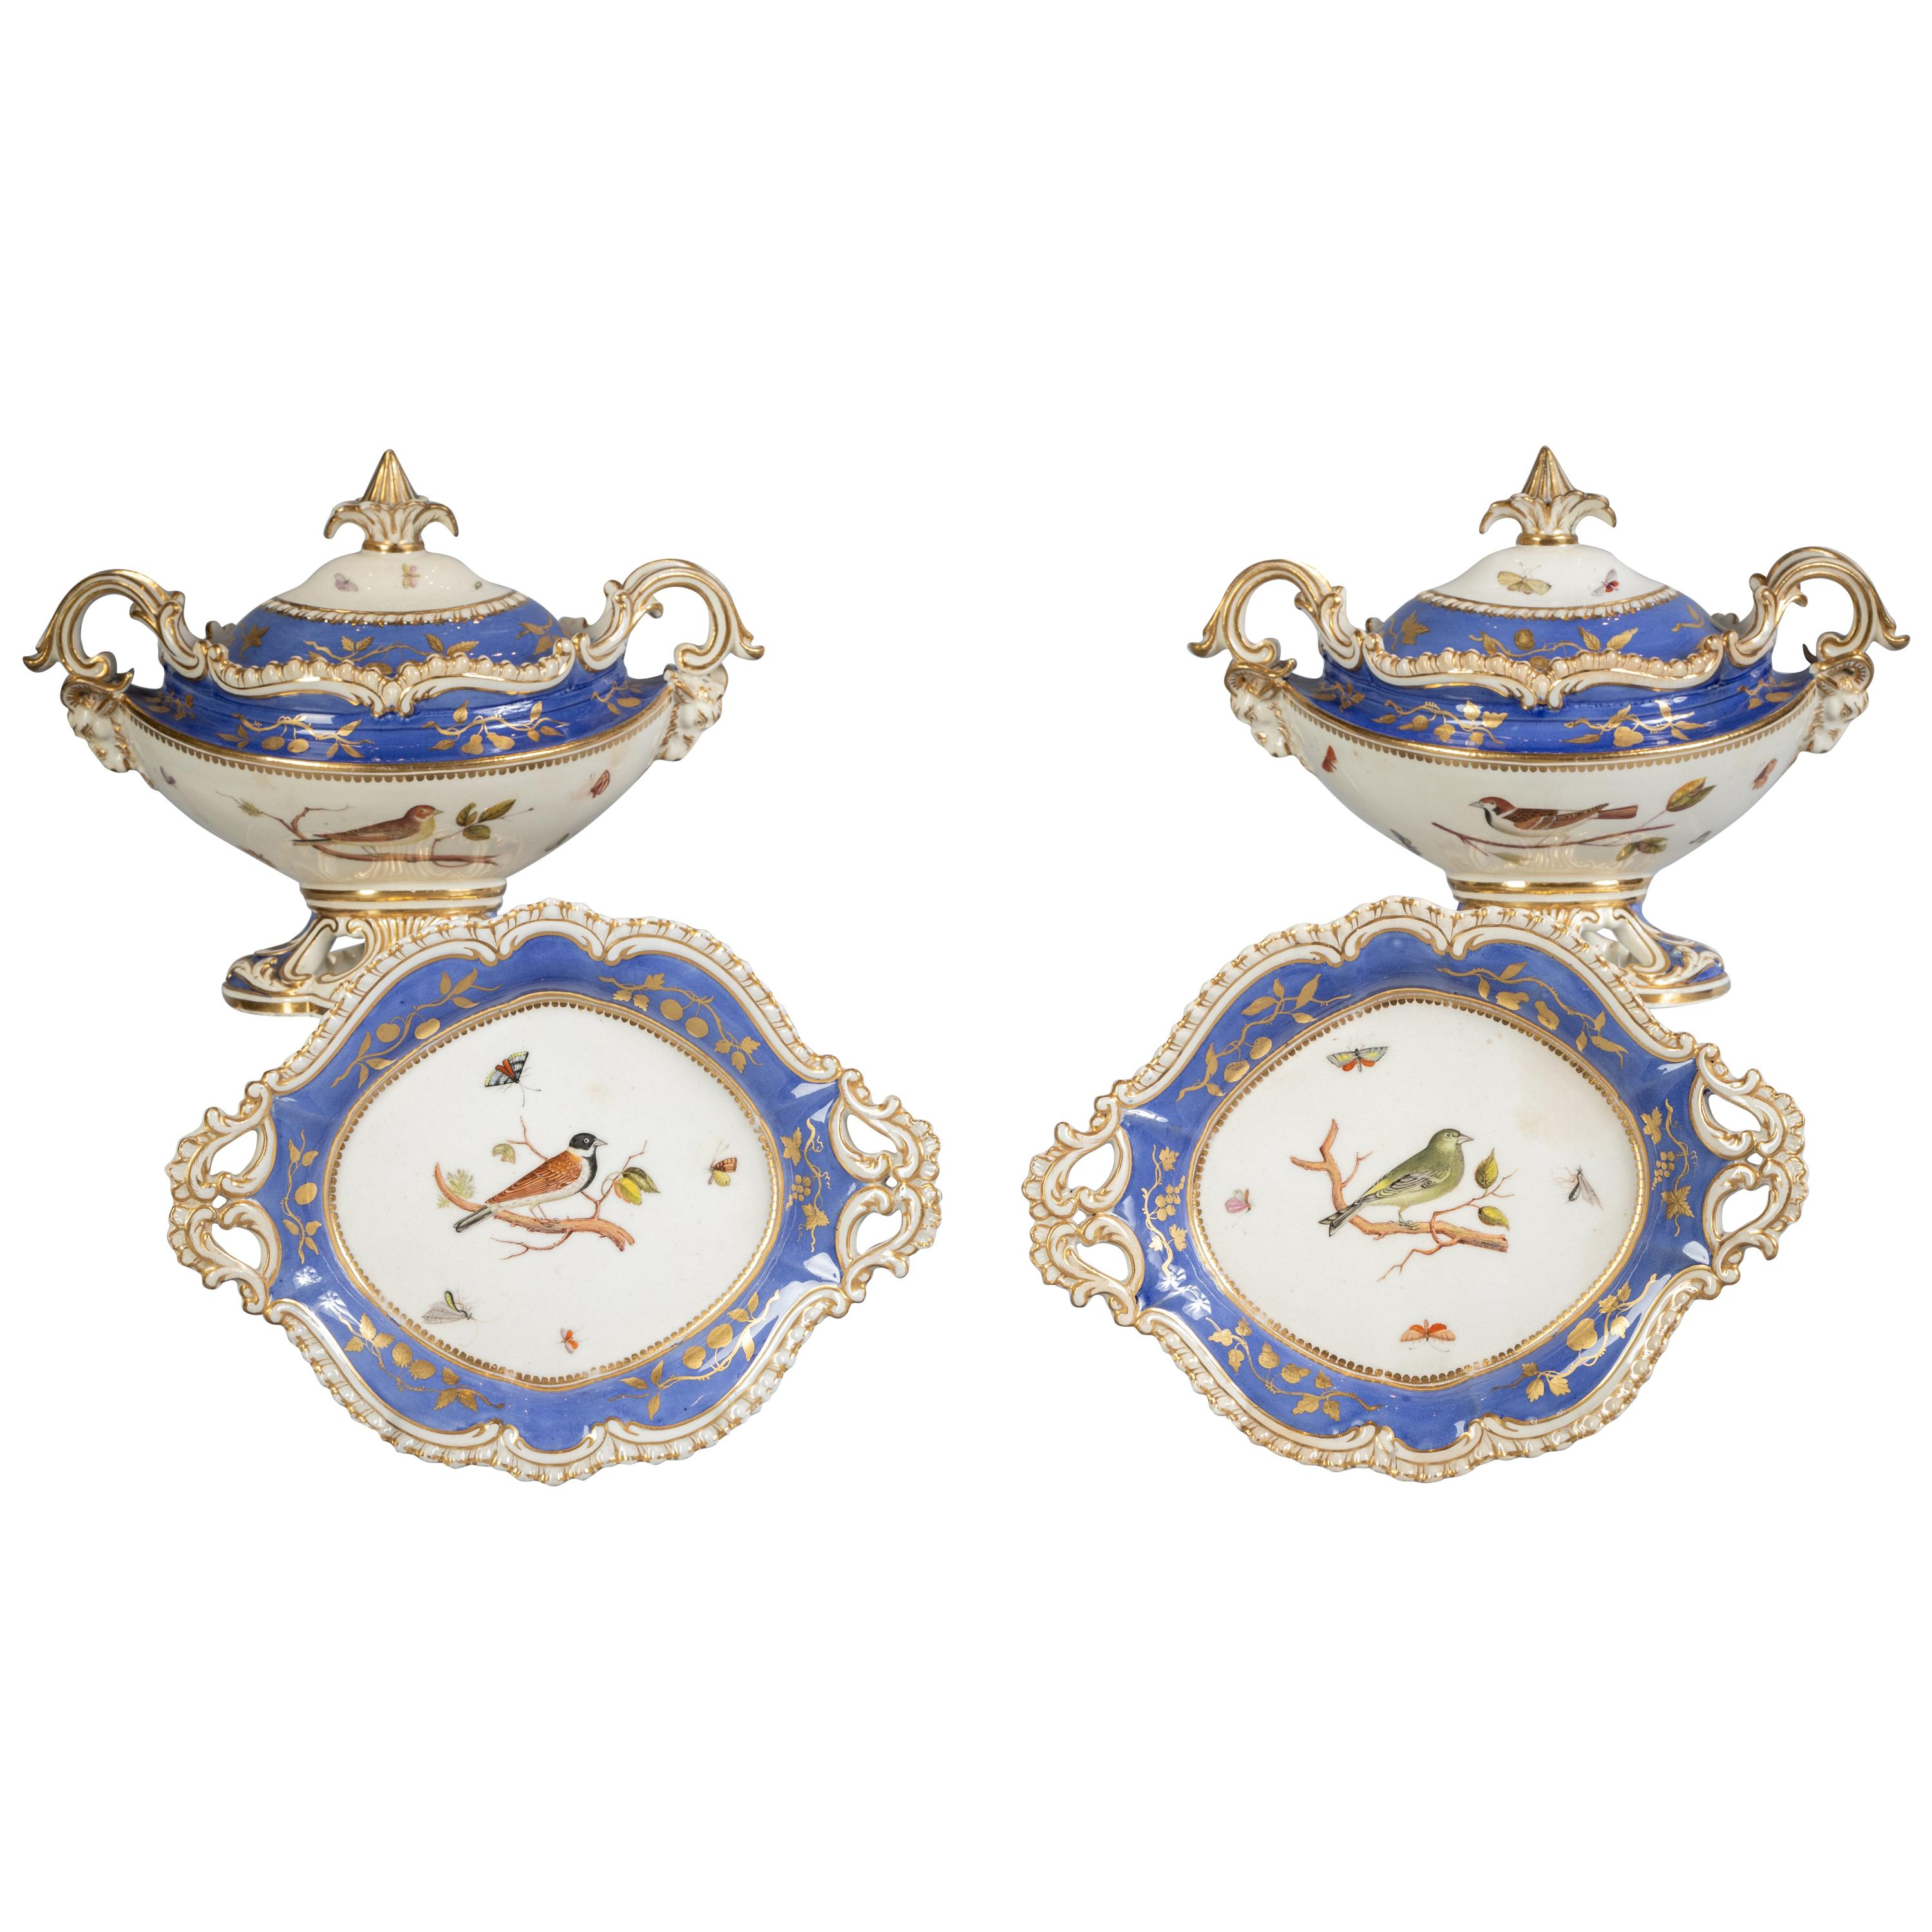 Pair of English Porcelain Ornithological Sauce Tureens on Stands, circa 1820